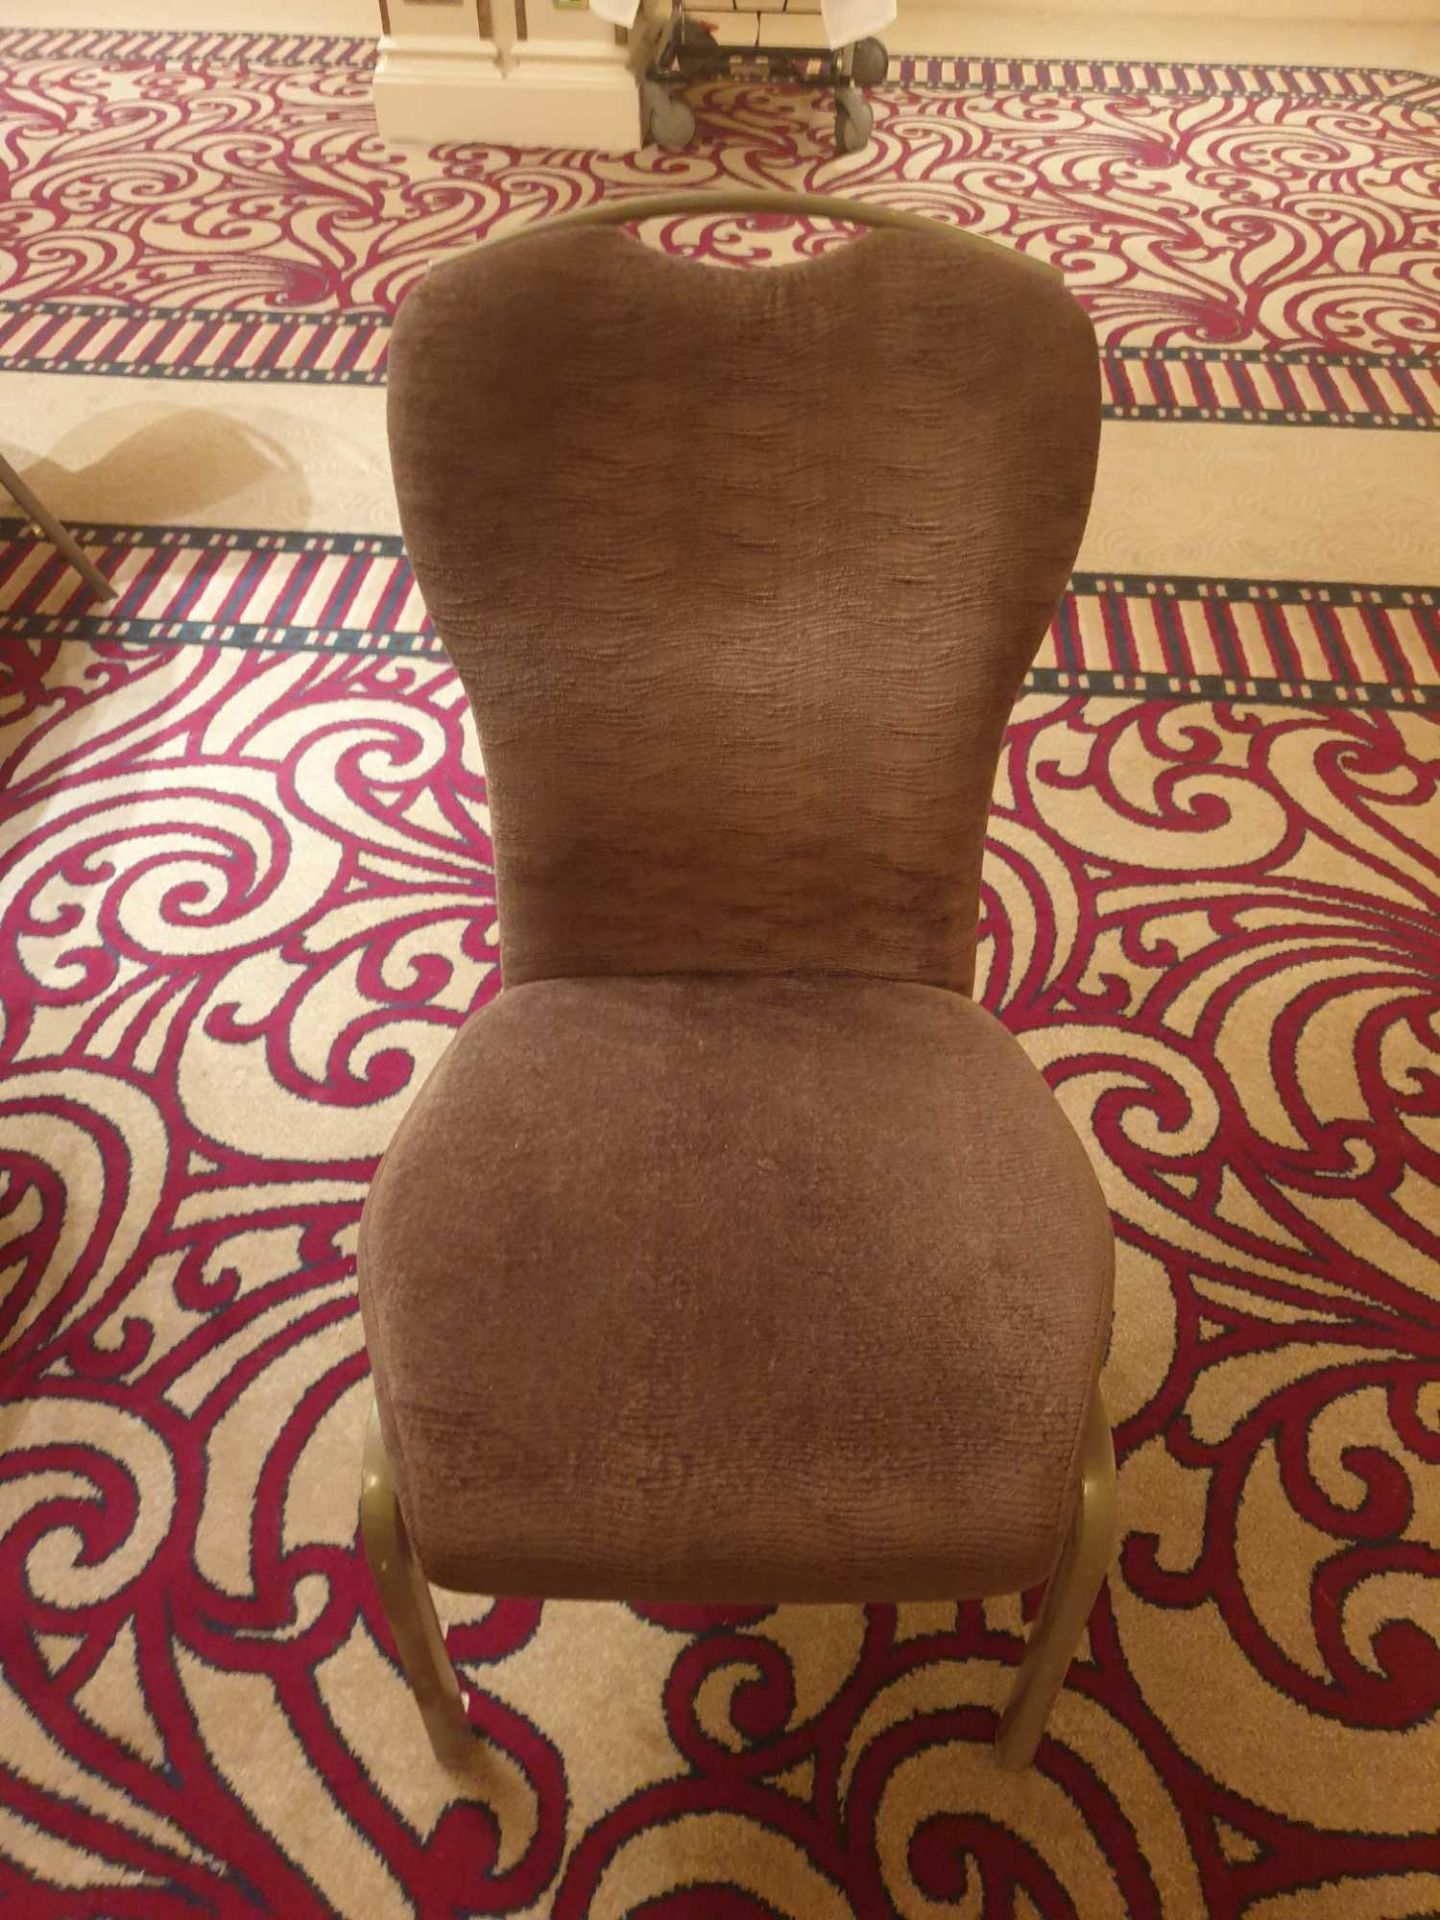 10x Burgess Taupe Upholstered Vario-Allday 21/7 Ergonomic Banqueting Chairs - Image 2 of 2